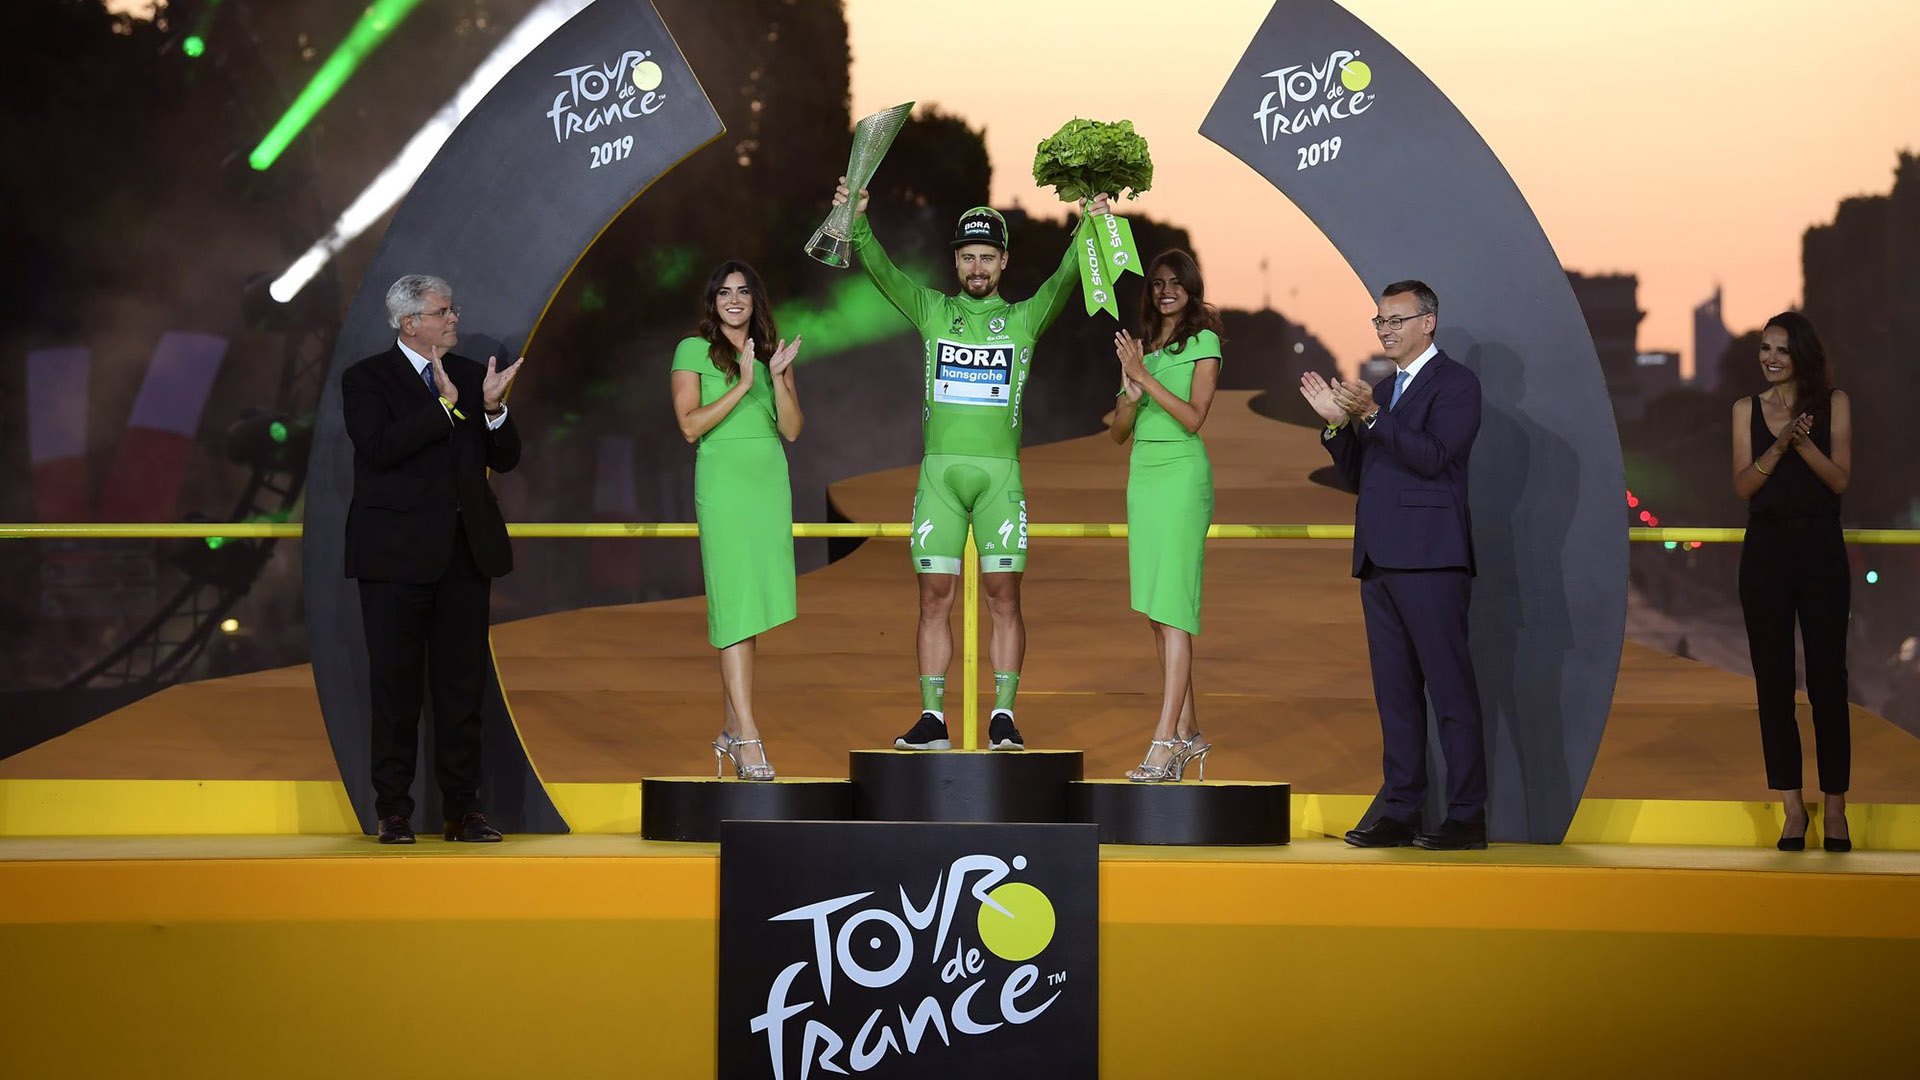 TdF_bettiniphoto_Sagan_gruen_Slider_3.jpg